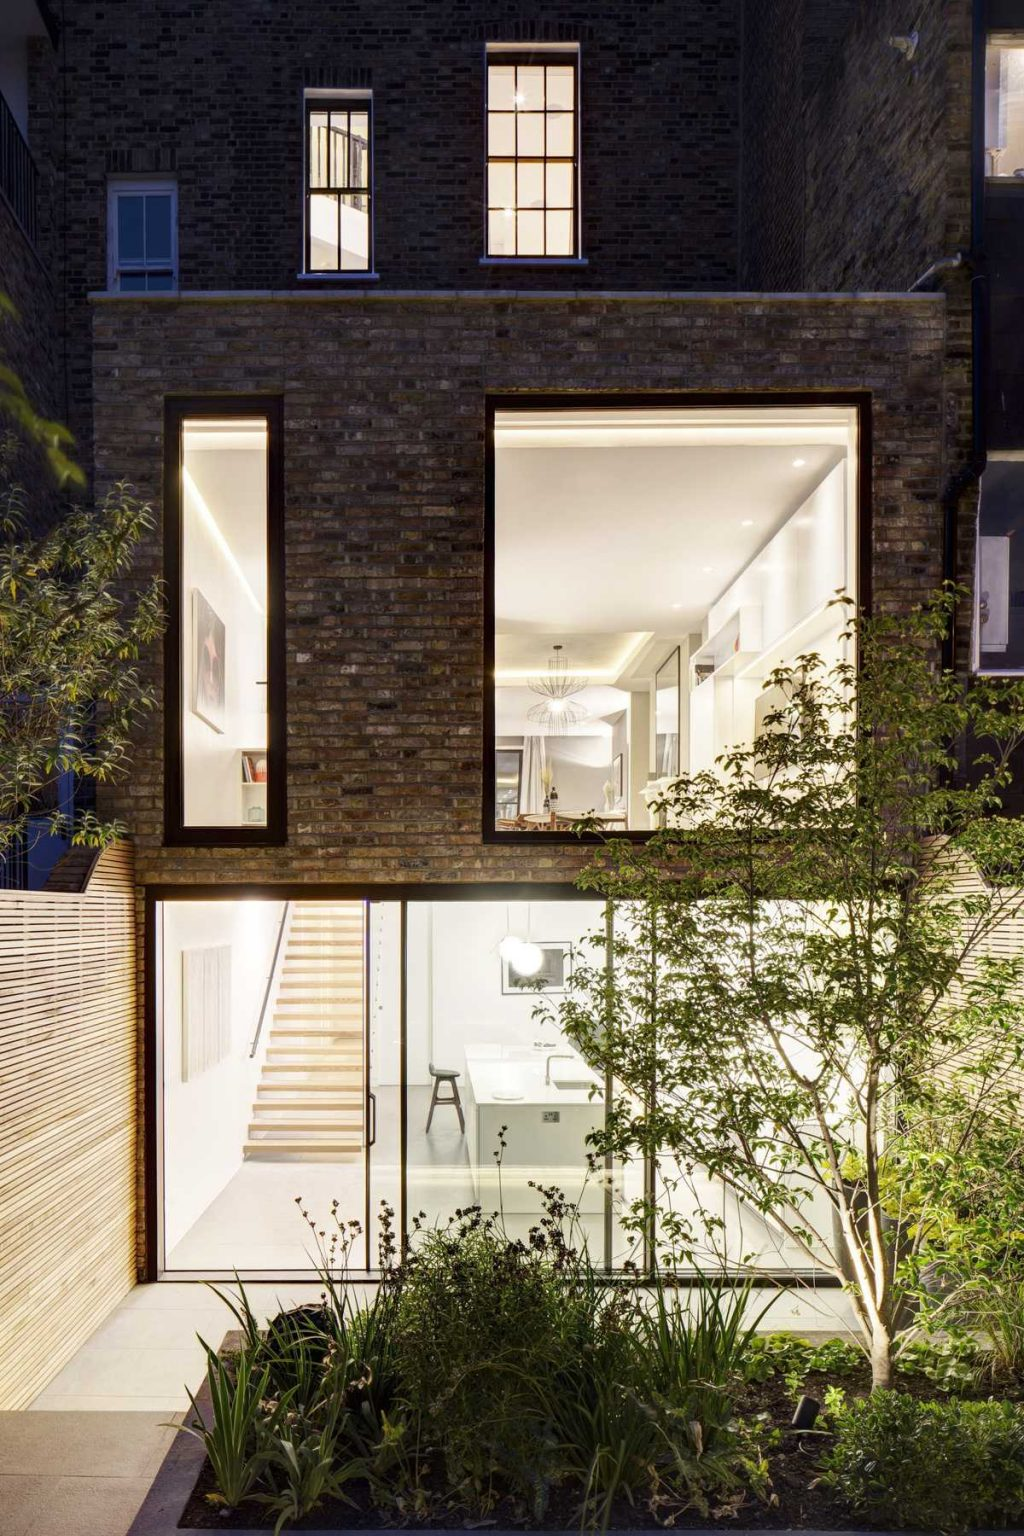 Refurbishment of an old Victorian Terrace House